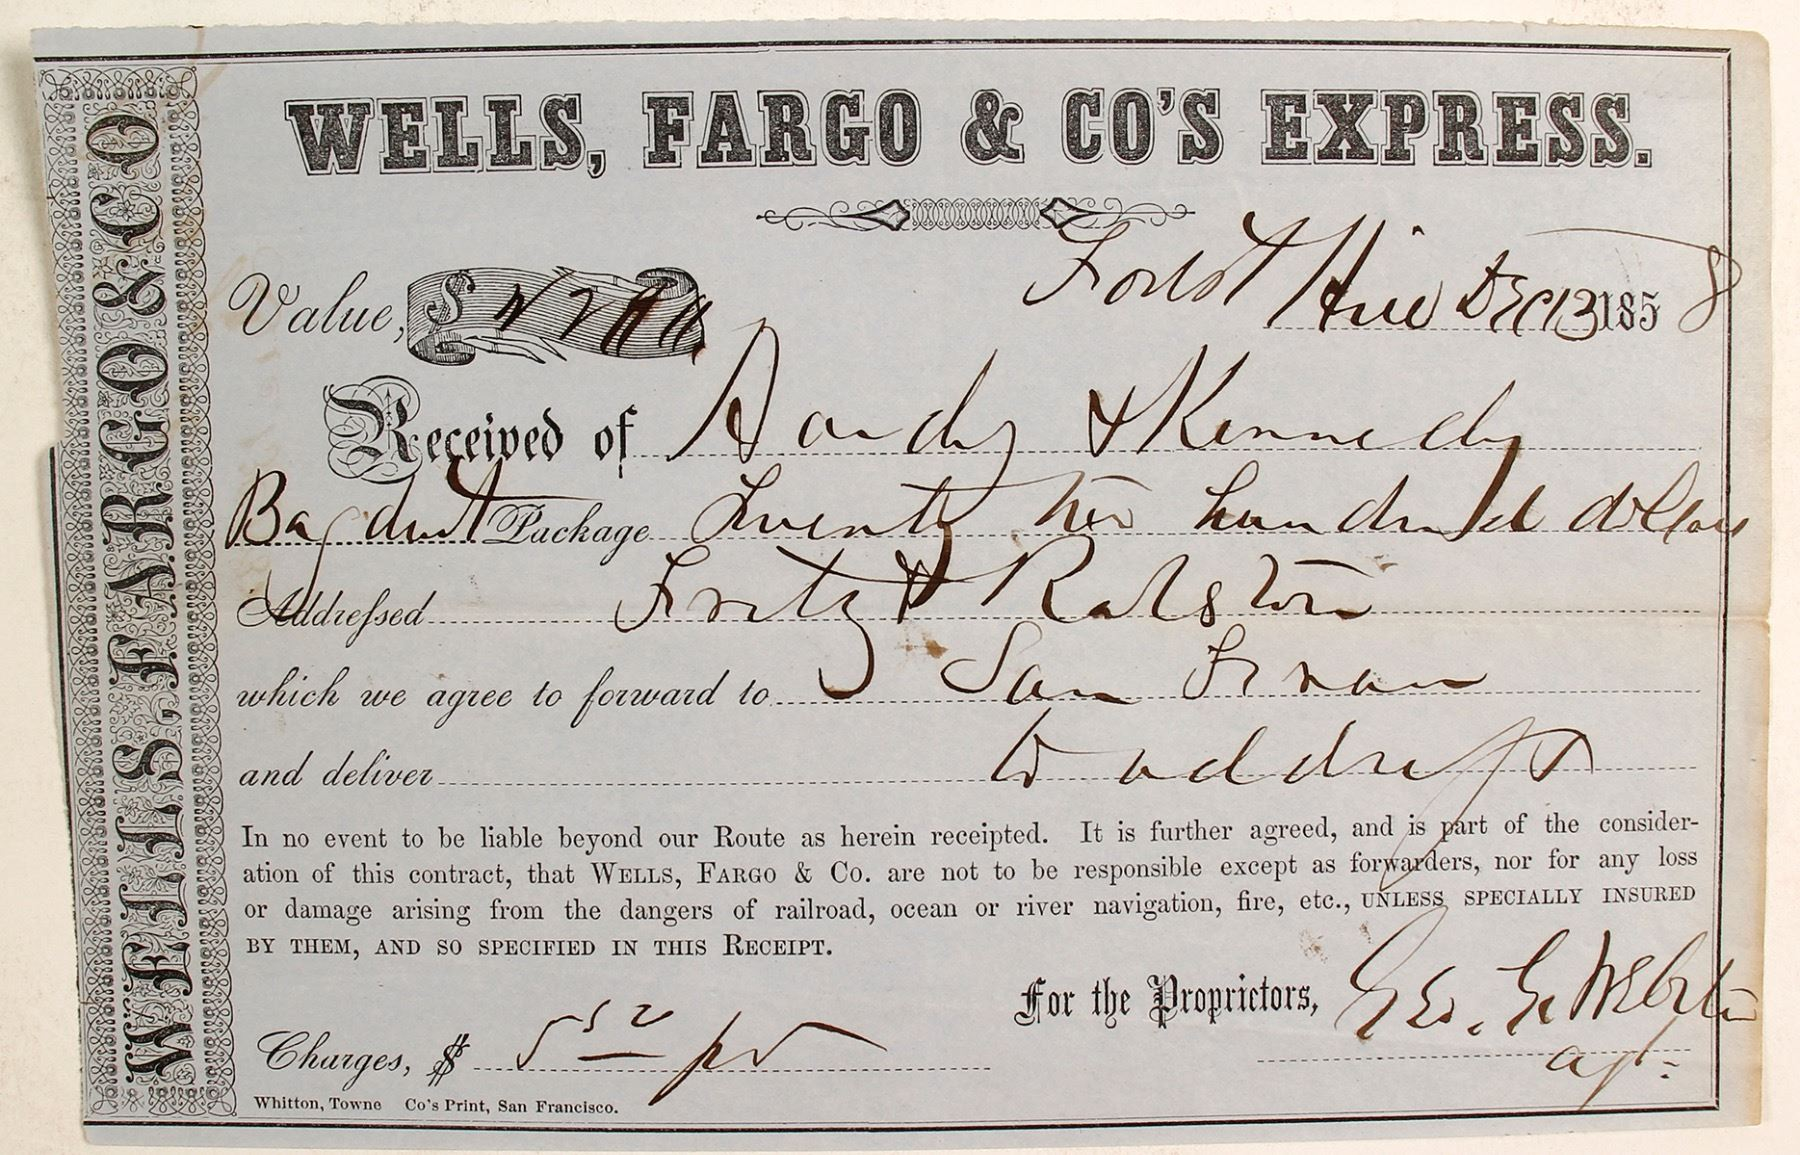 Exelent Wells Fargo Wiring Instructions Elaboration - The Wire ...